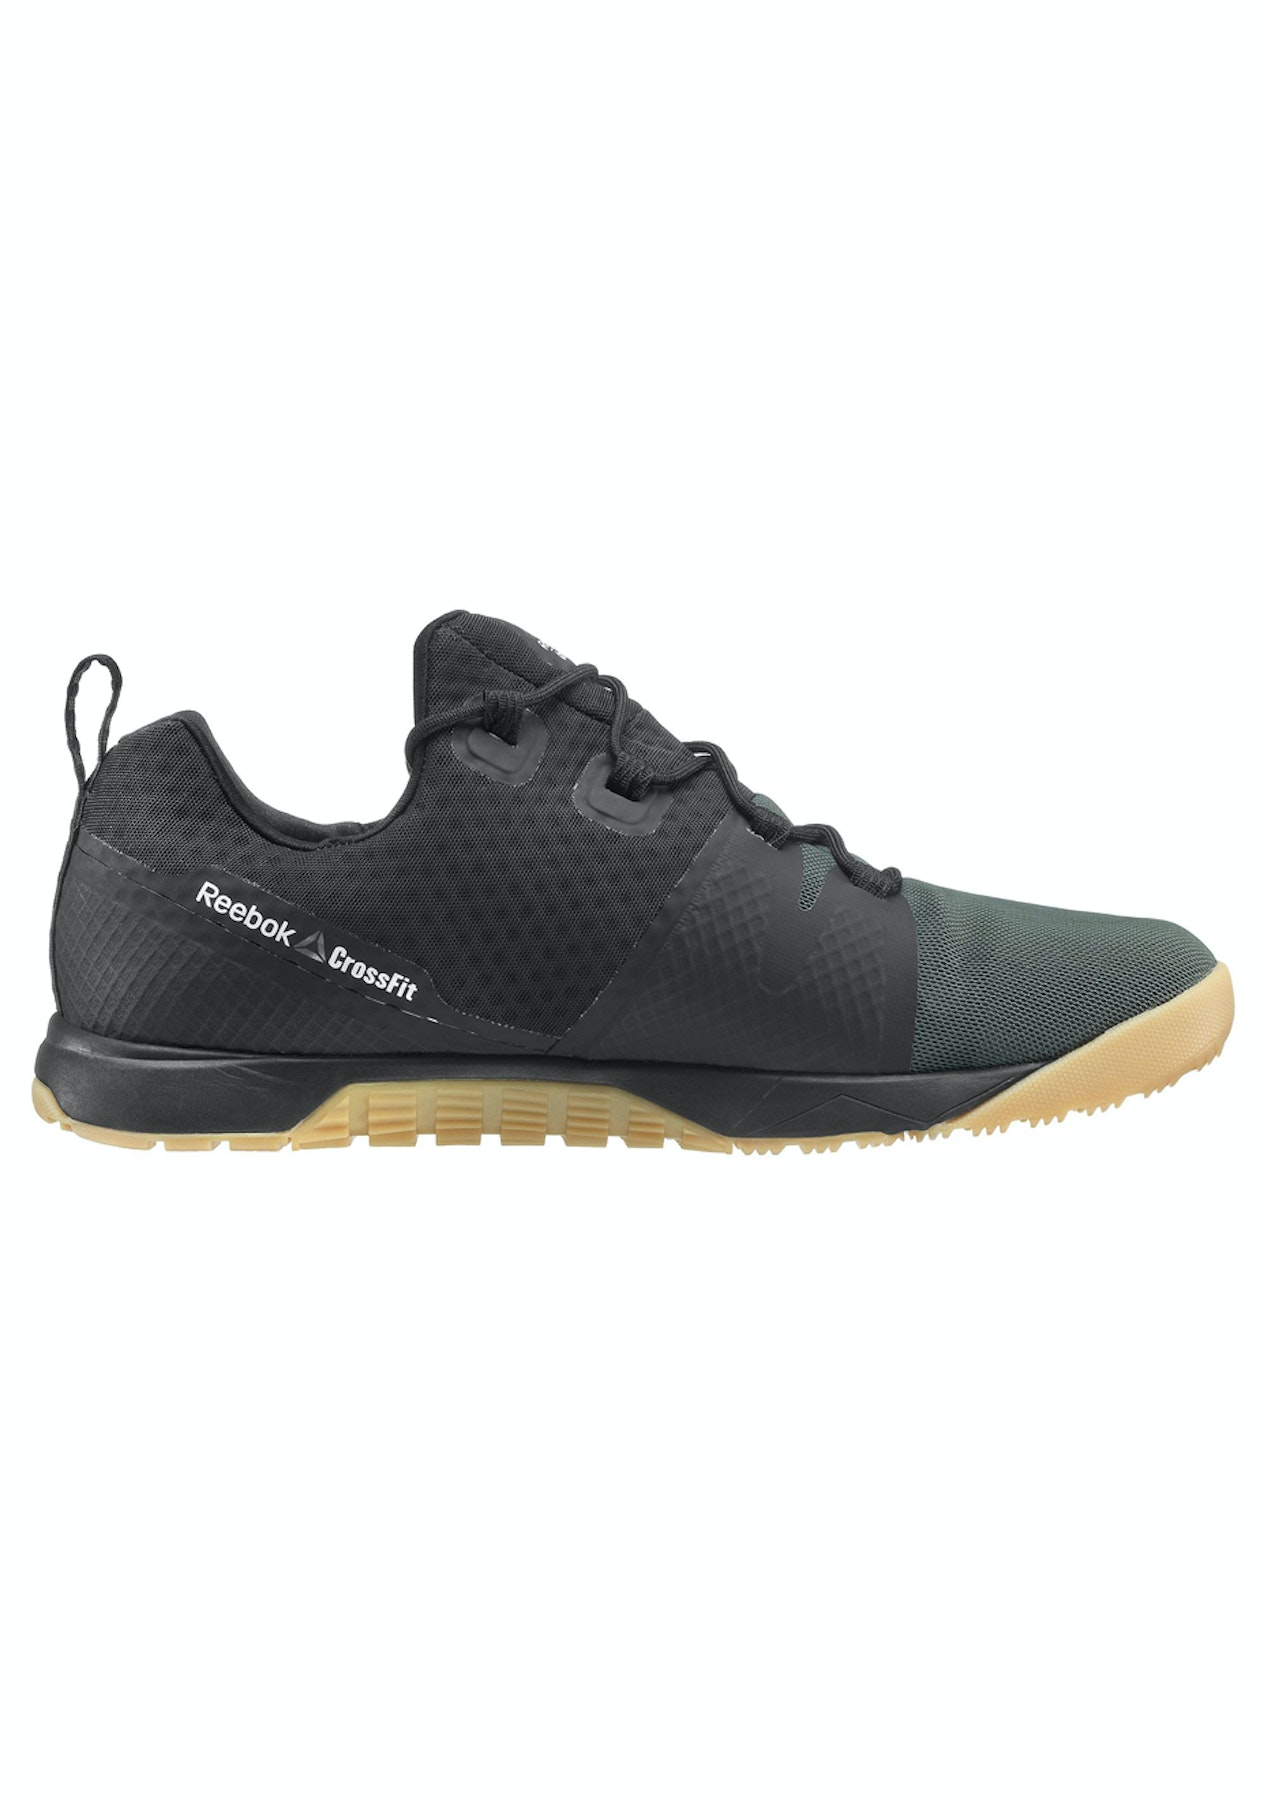 Reebok Mens - R Crossfit Nano Pump - Black Coal Classic White Gum Pewter -  Mens Shoe Sale - Onceit 30900643d